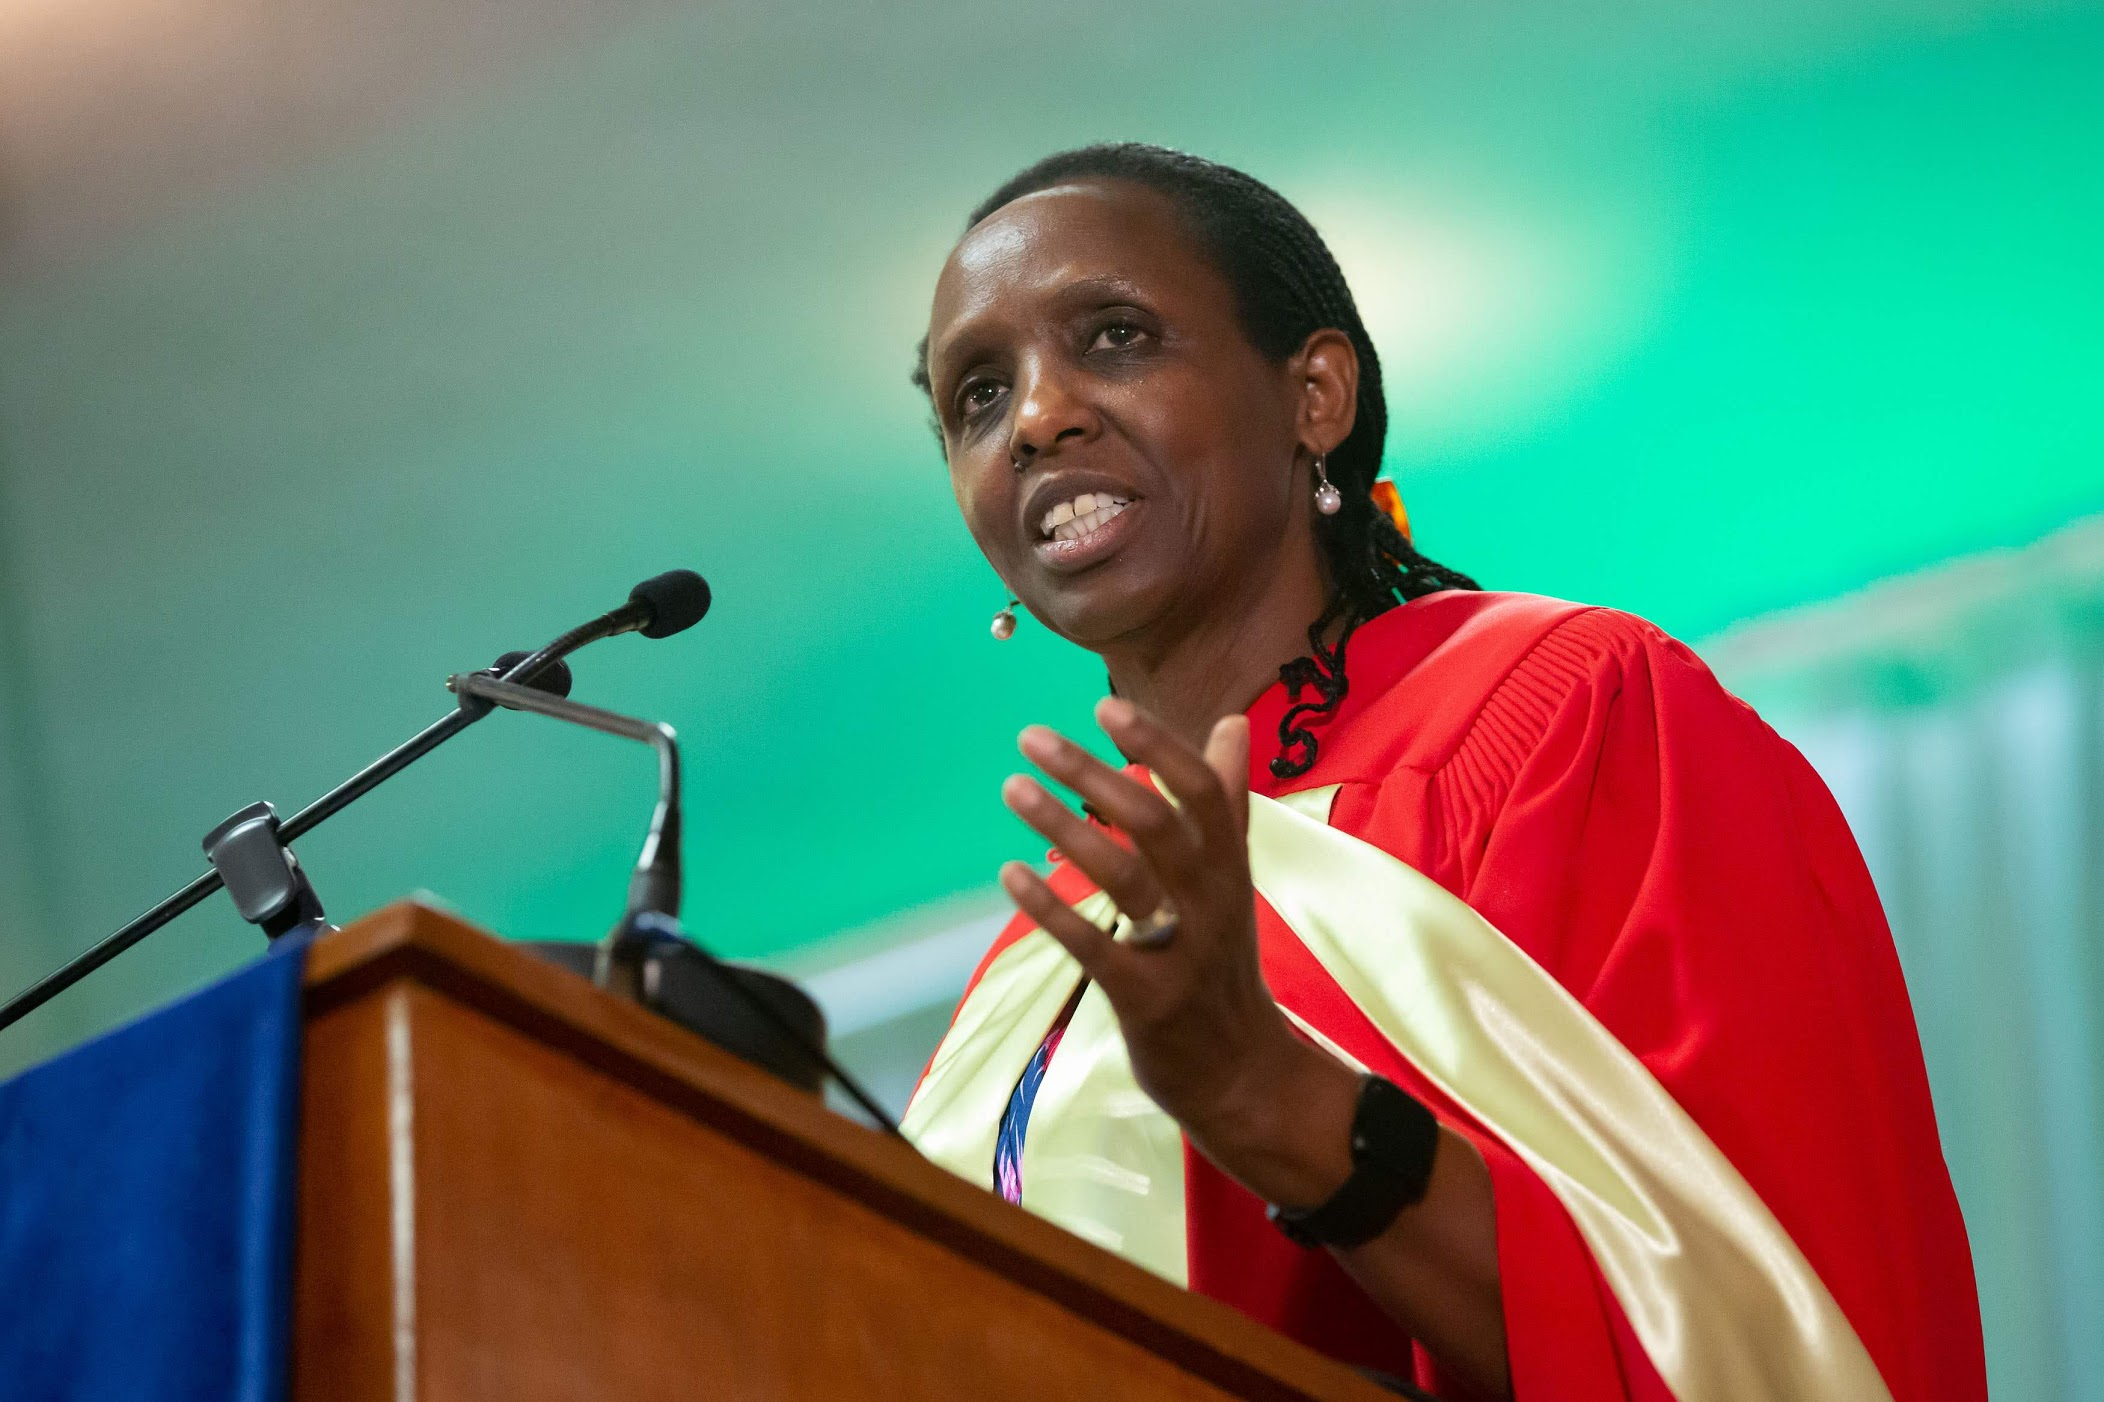 Agnes Kalibata was named UN Secretary General's Special Envoy for 2021 Food Systems Summit